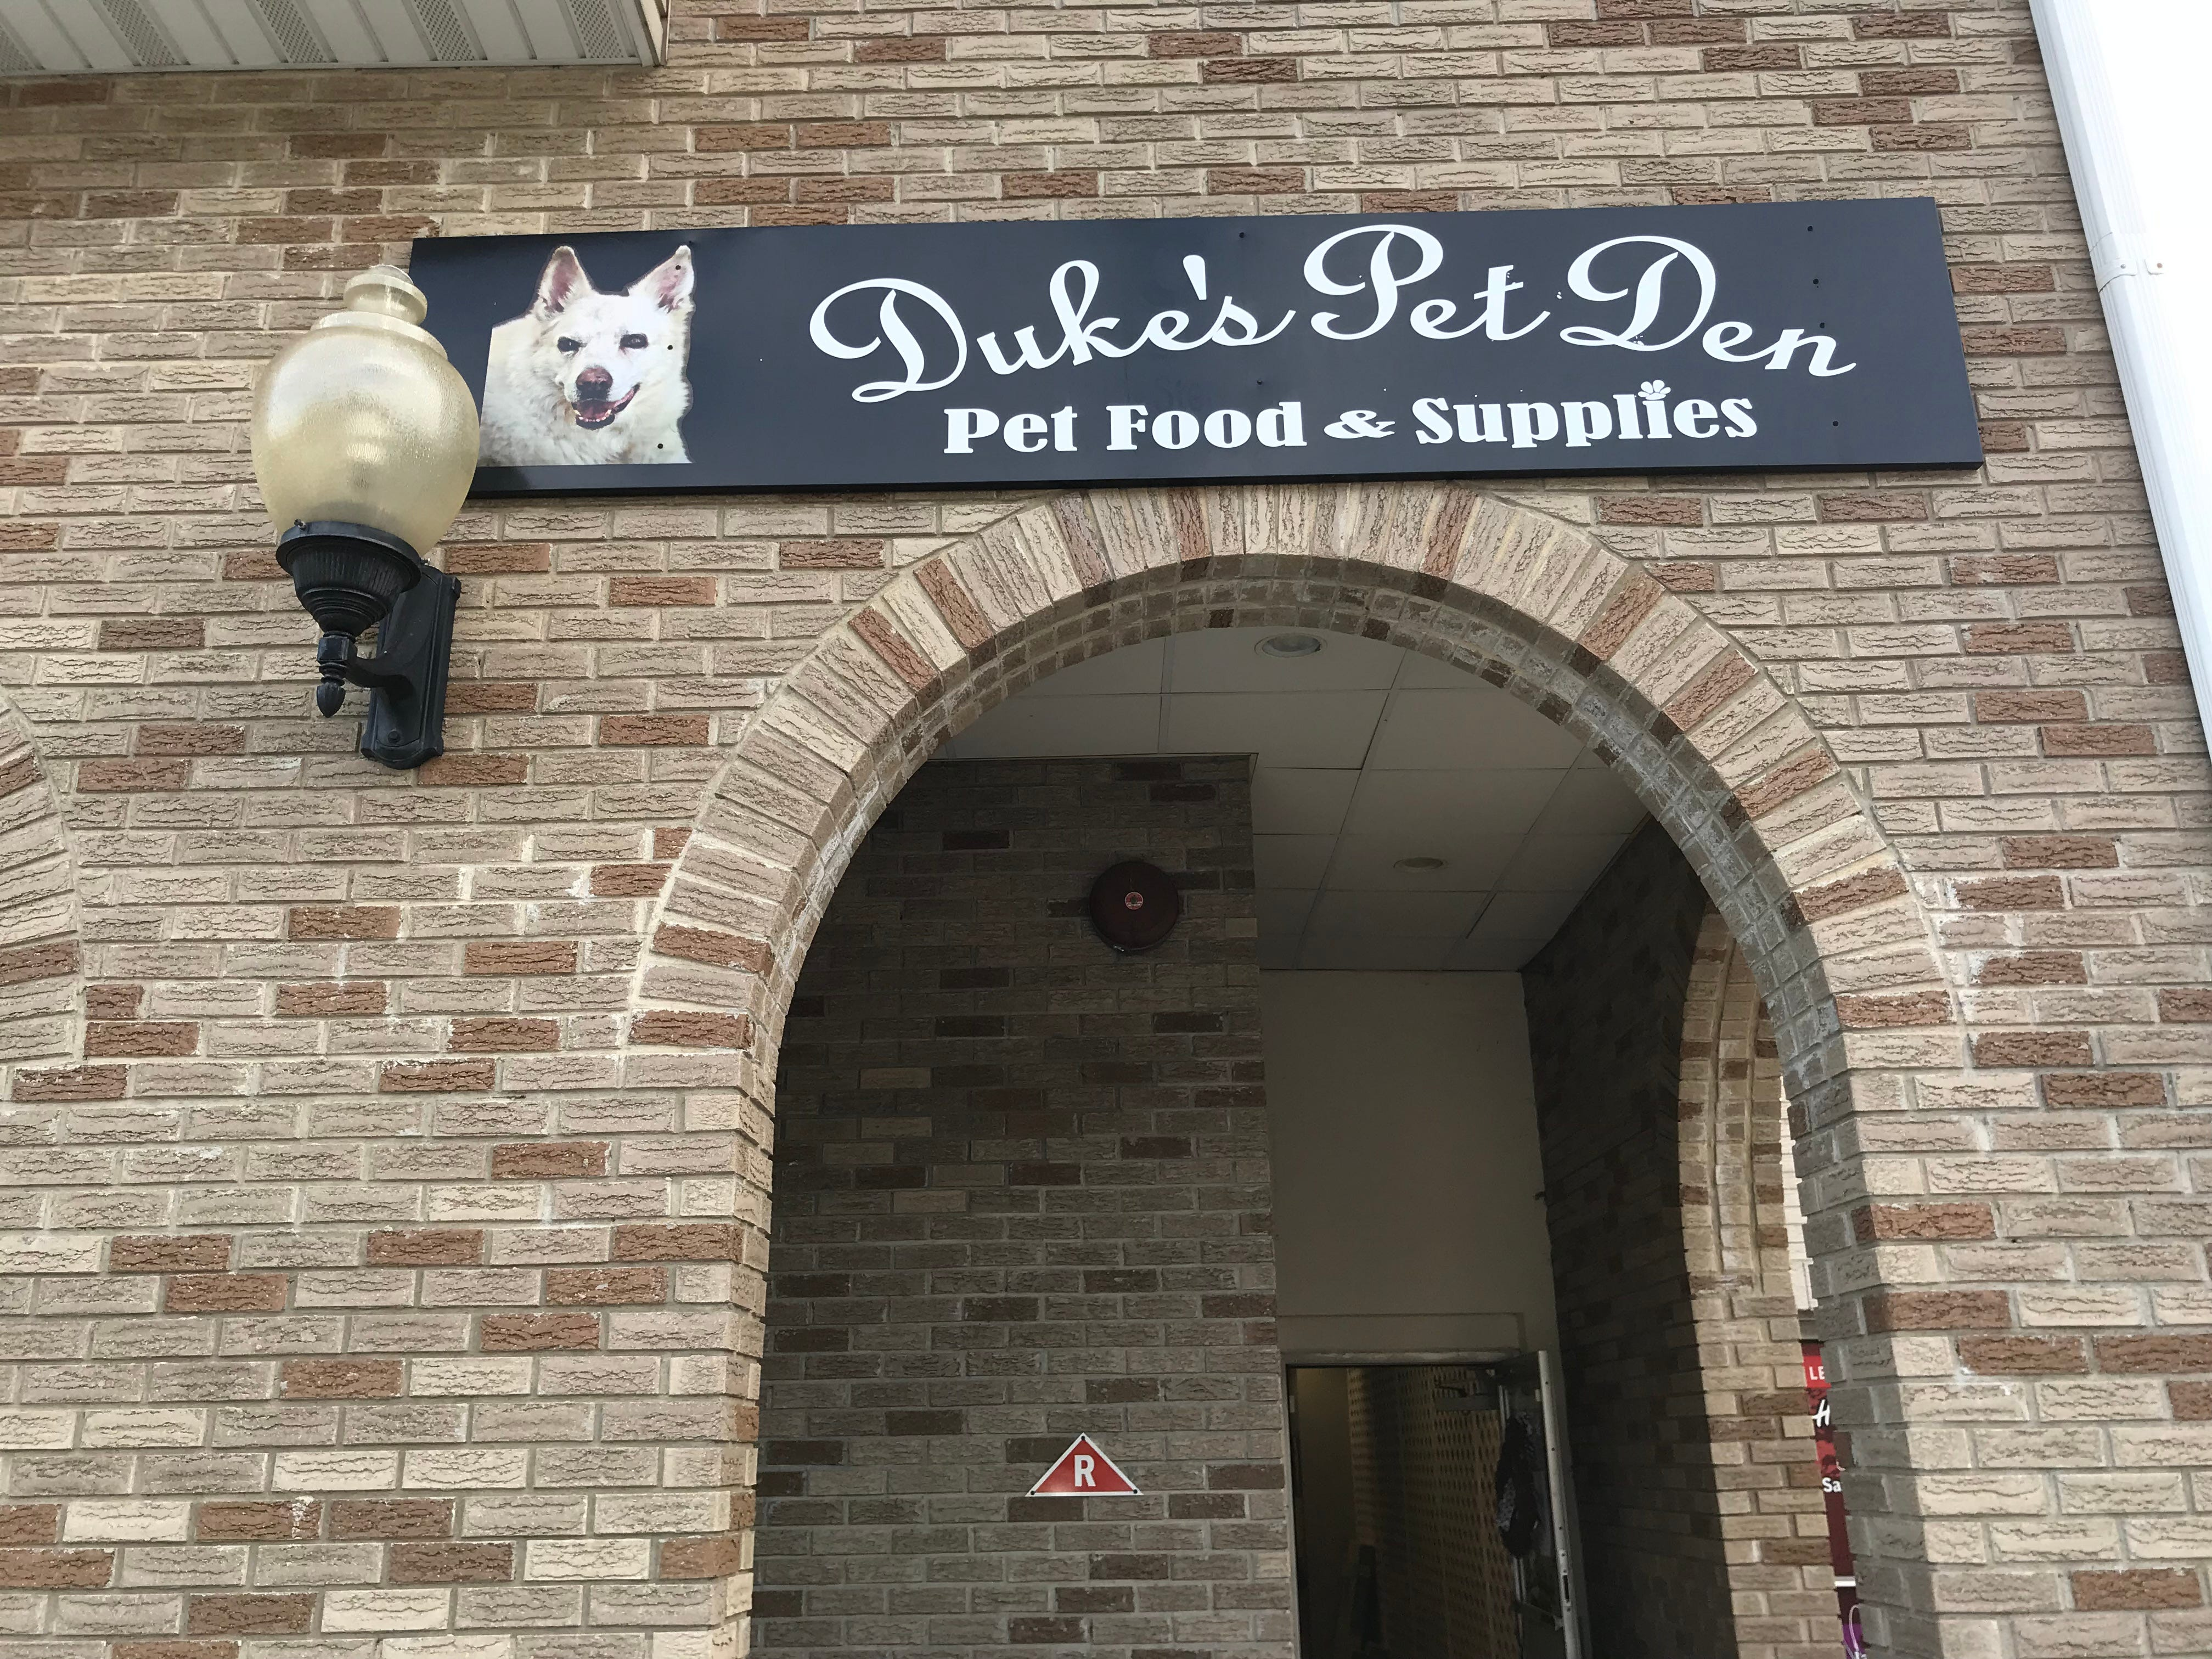 Scotch Plains businesses, such as the new Duke's Pet Den, are expected to get a boost from forthcoming downtown redevelopment.